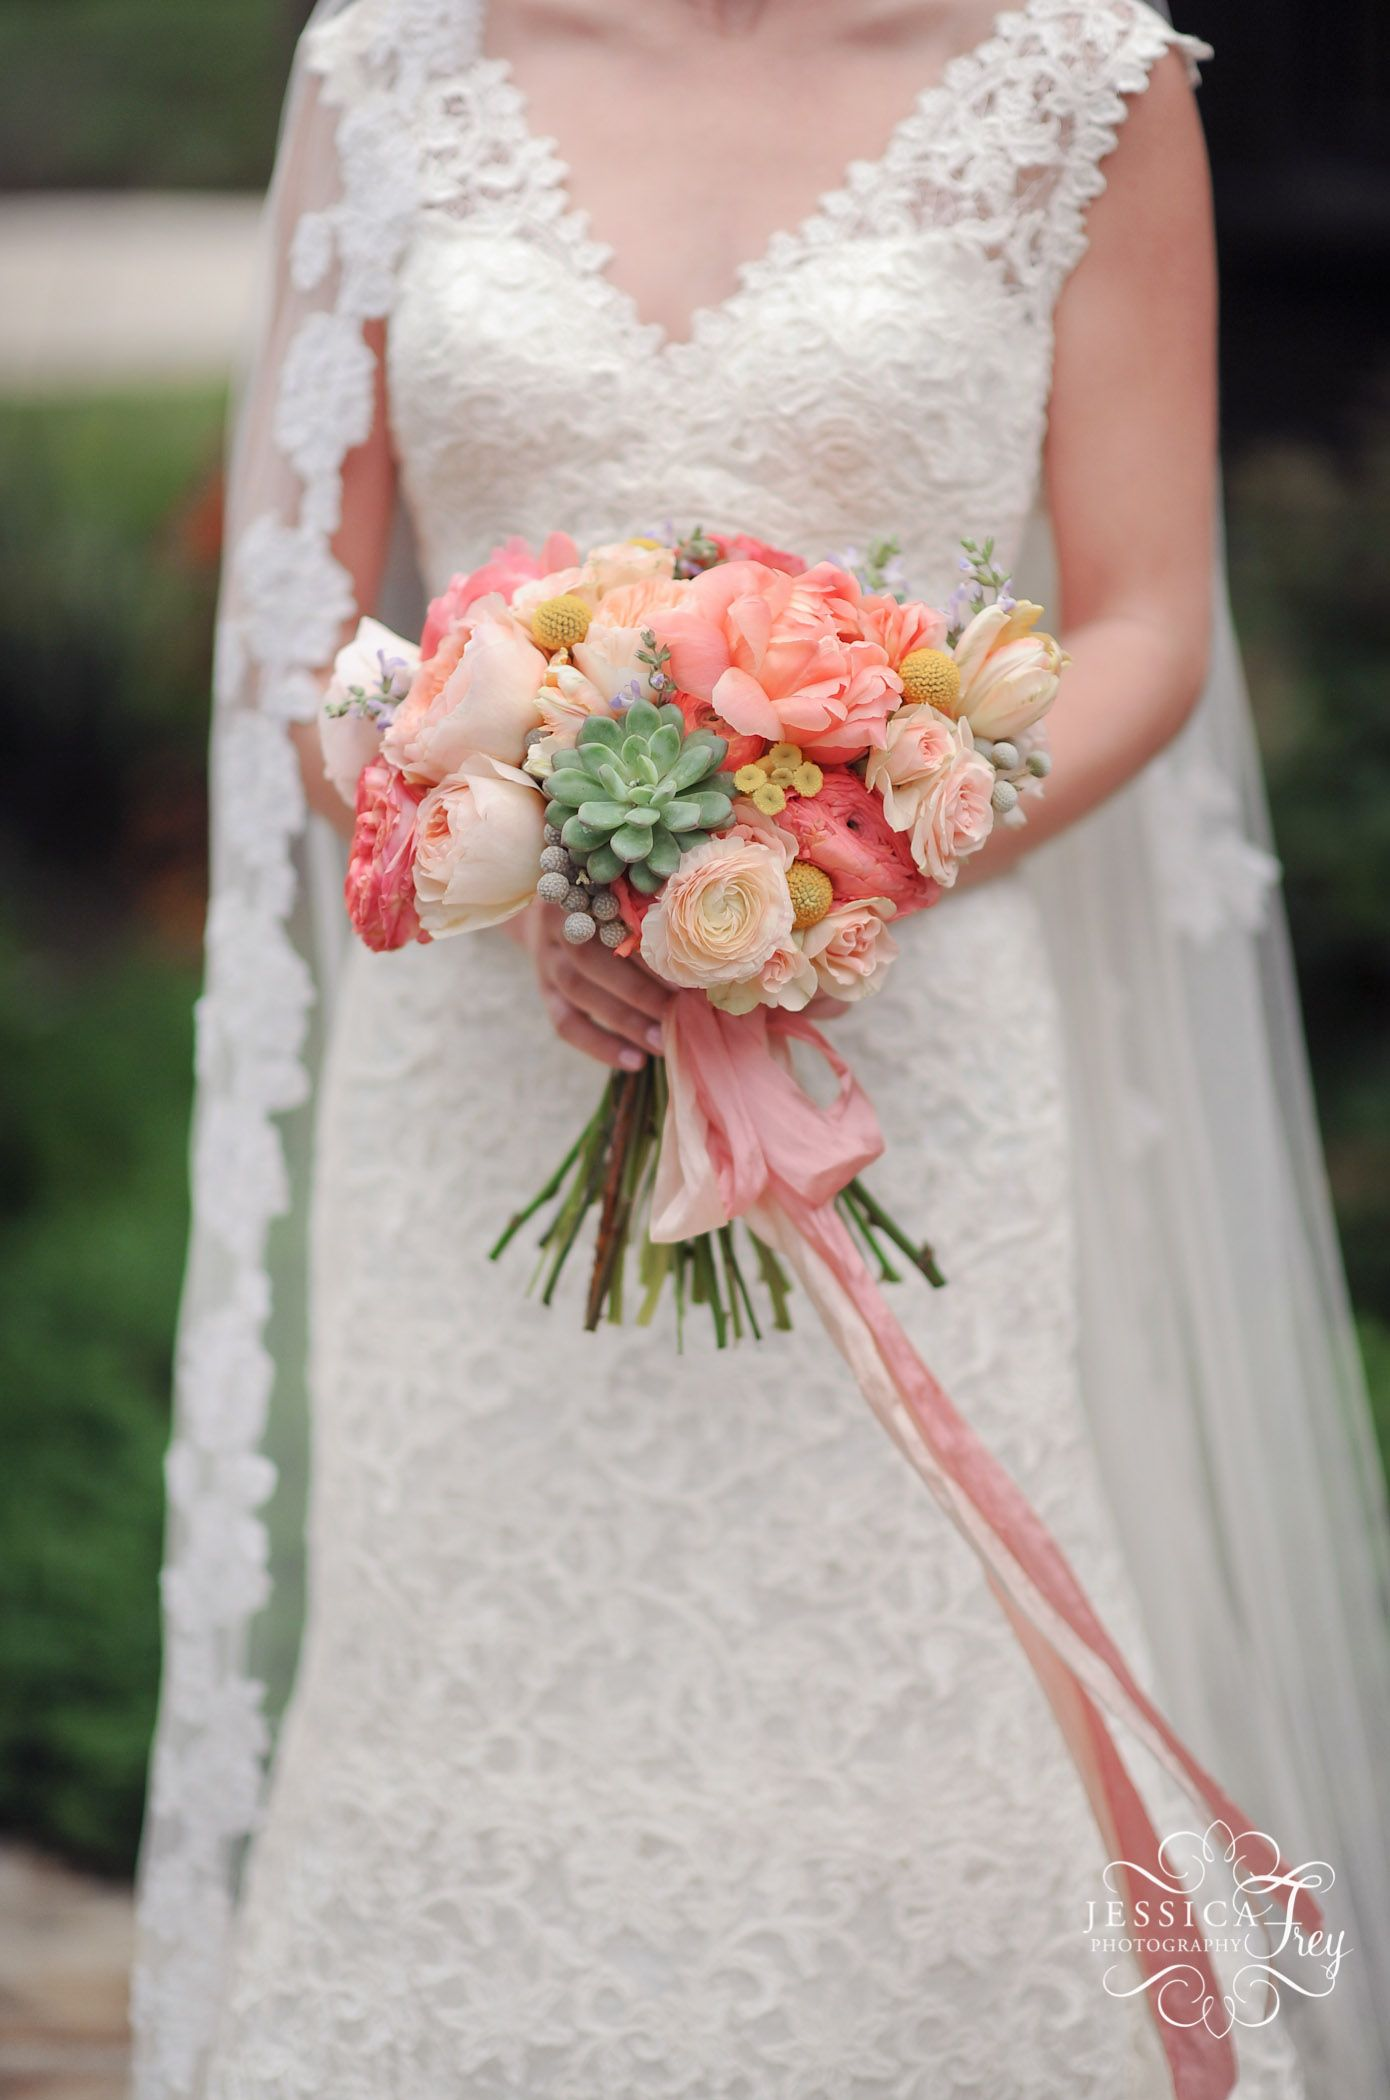 sprout flowers silk willow pink silk coral pink wedding bouquet jessica frey photography boot ranch wedding austin wedding photographer coral pink